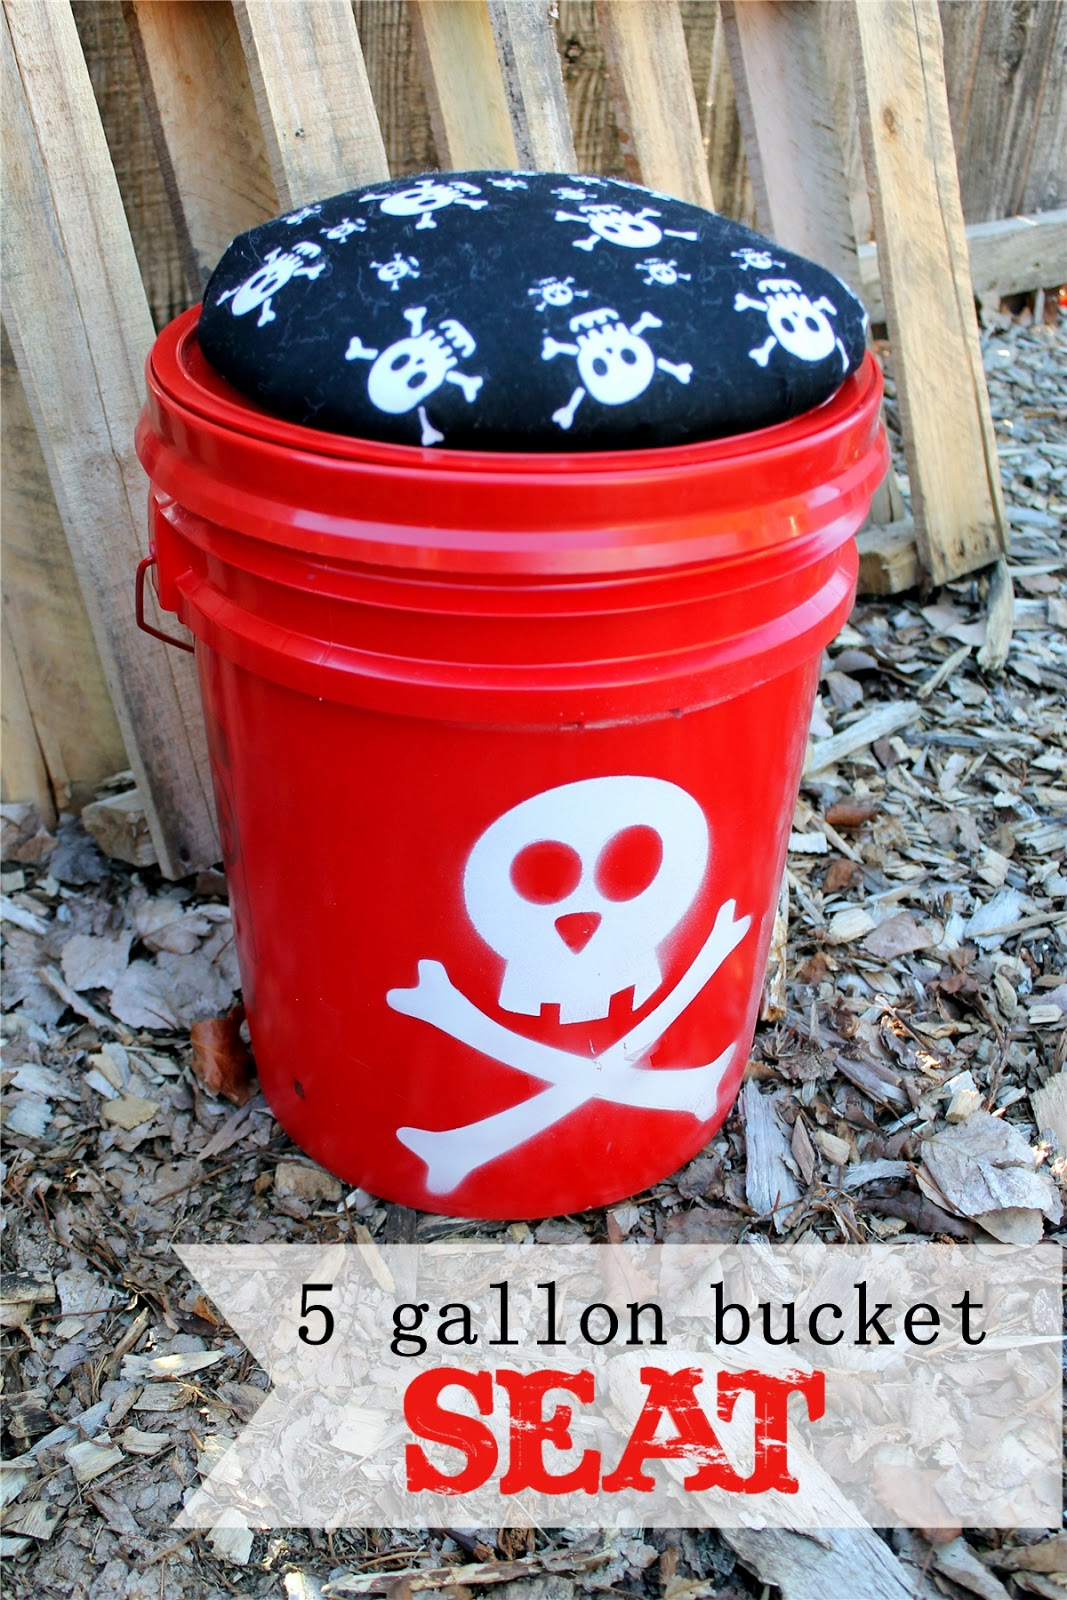 5 Gallon Bucket Home Depot Home Depot 5 Gallon Paint Home Painting Ideas